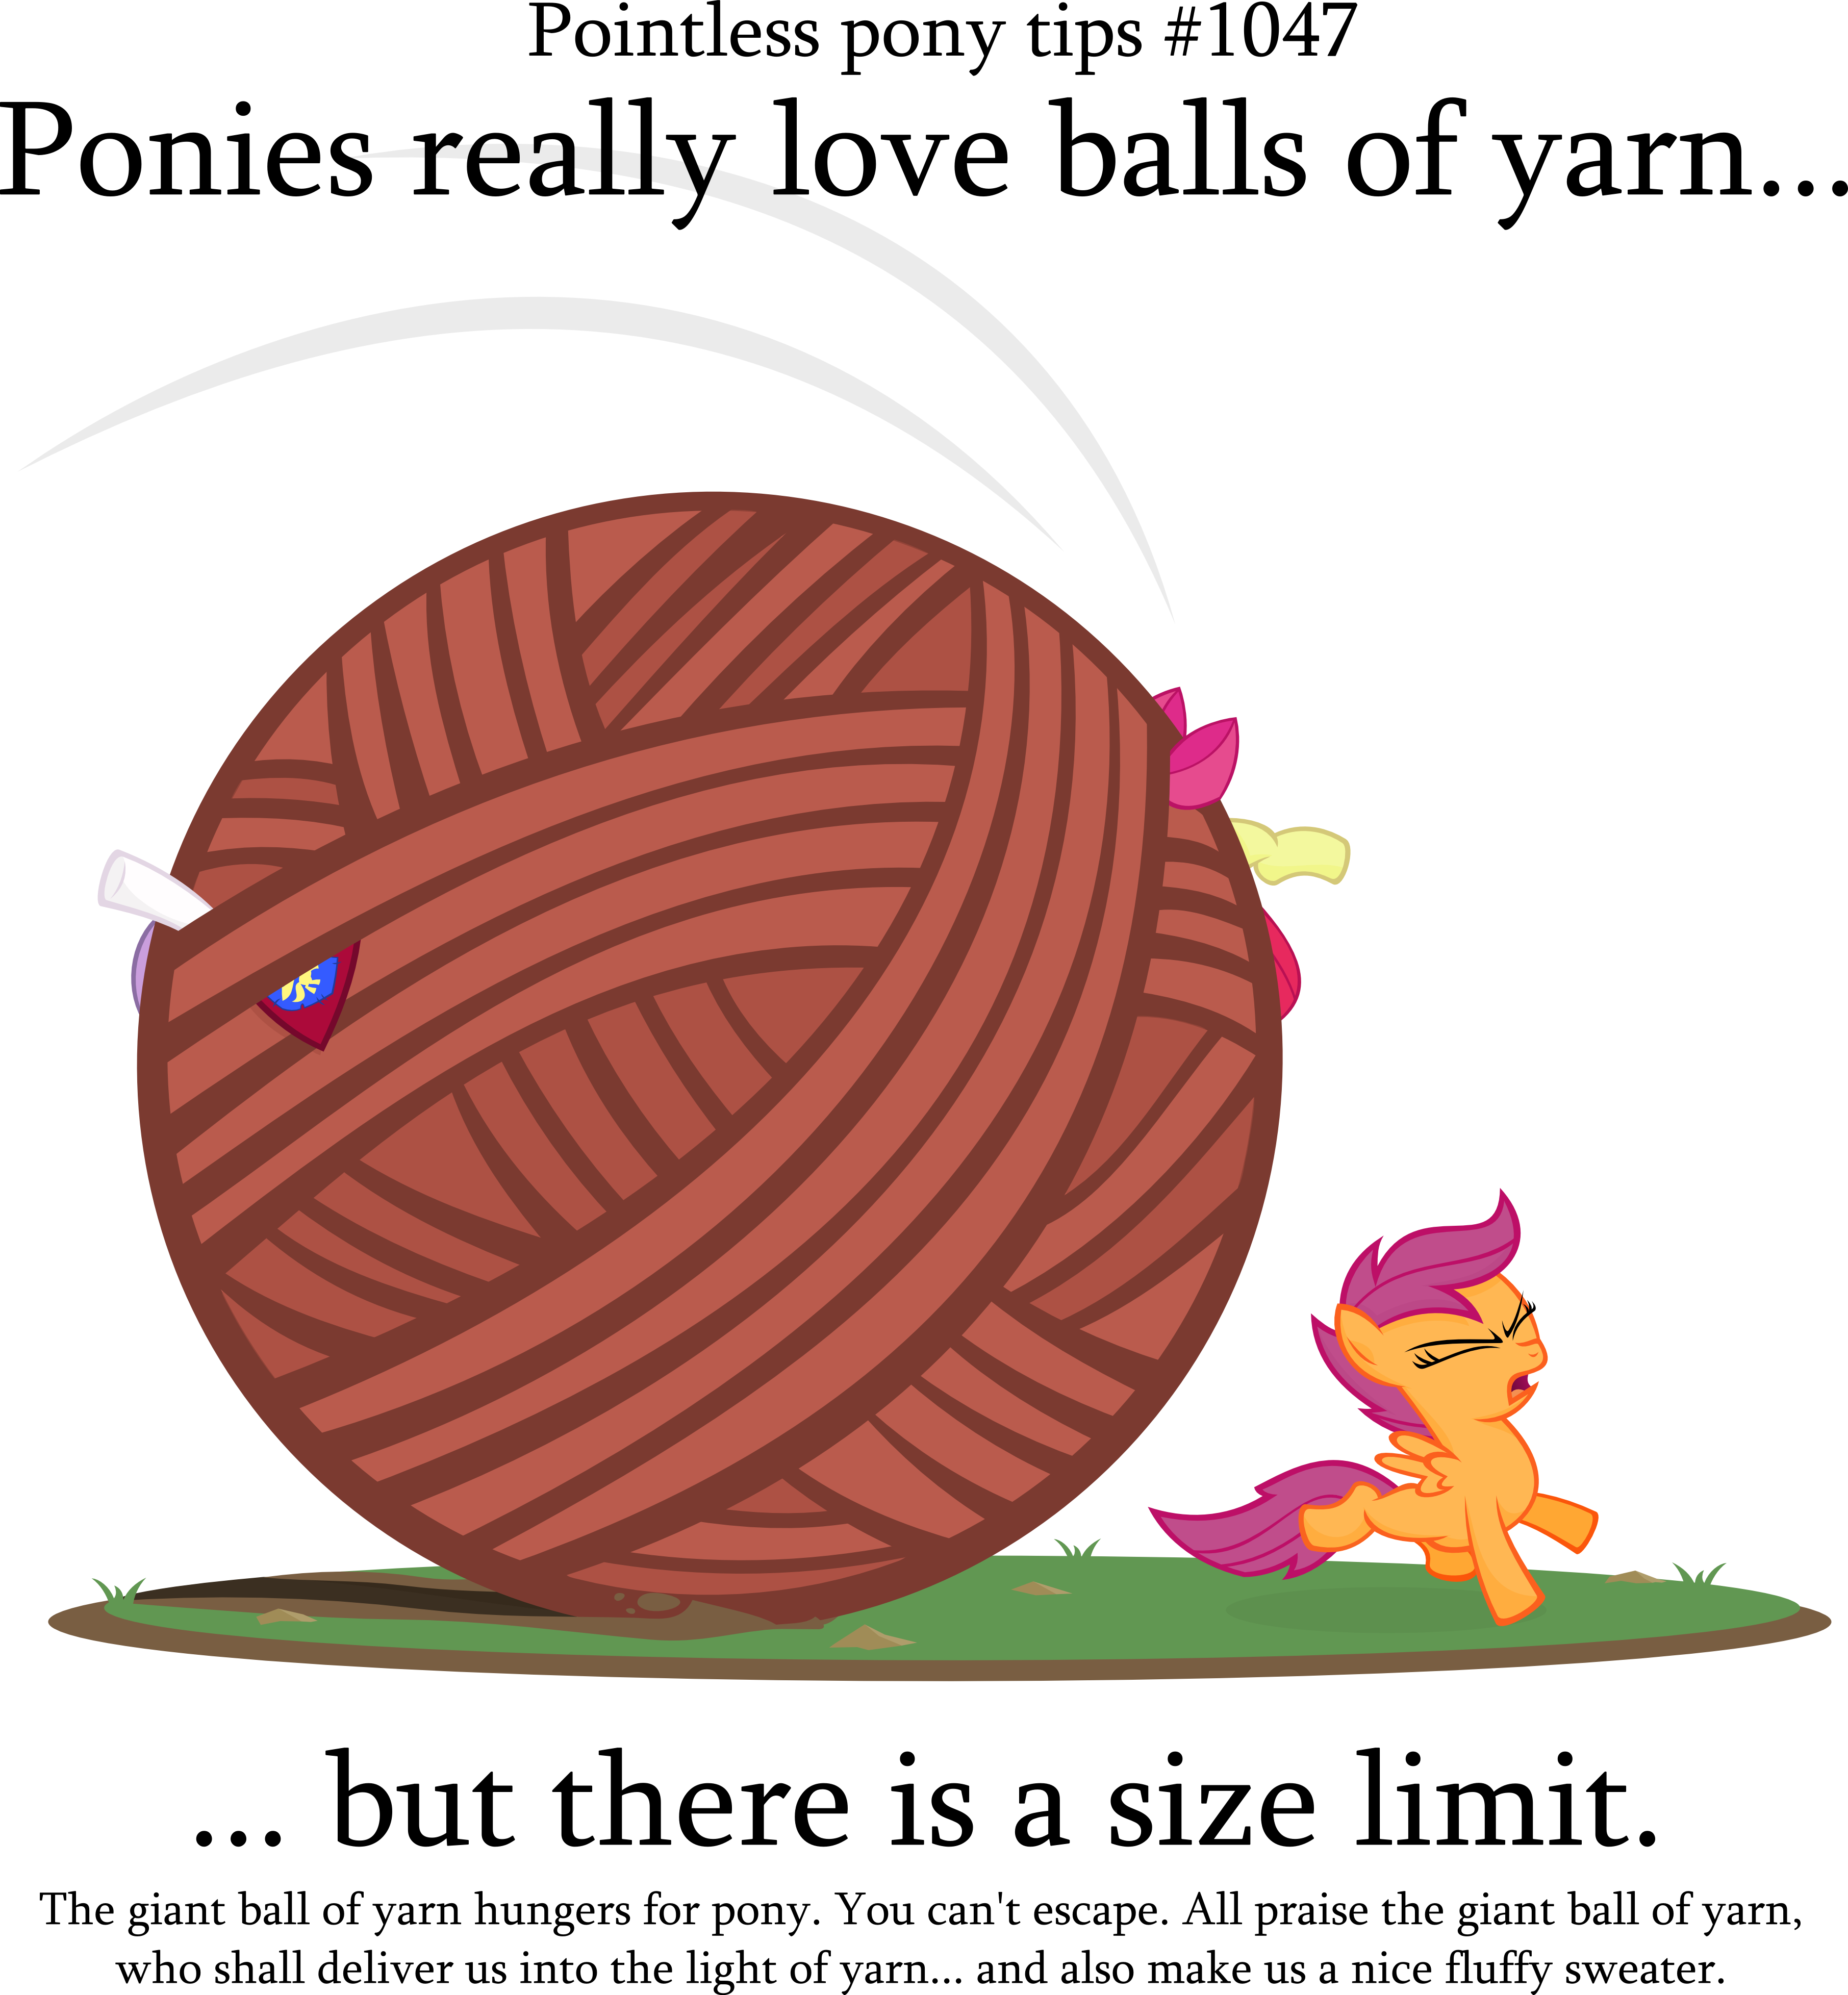 Rubber band ball png. Pointless pony tips my